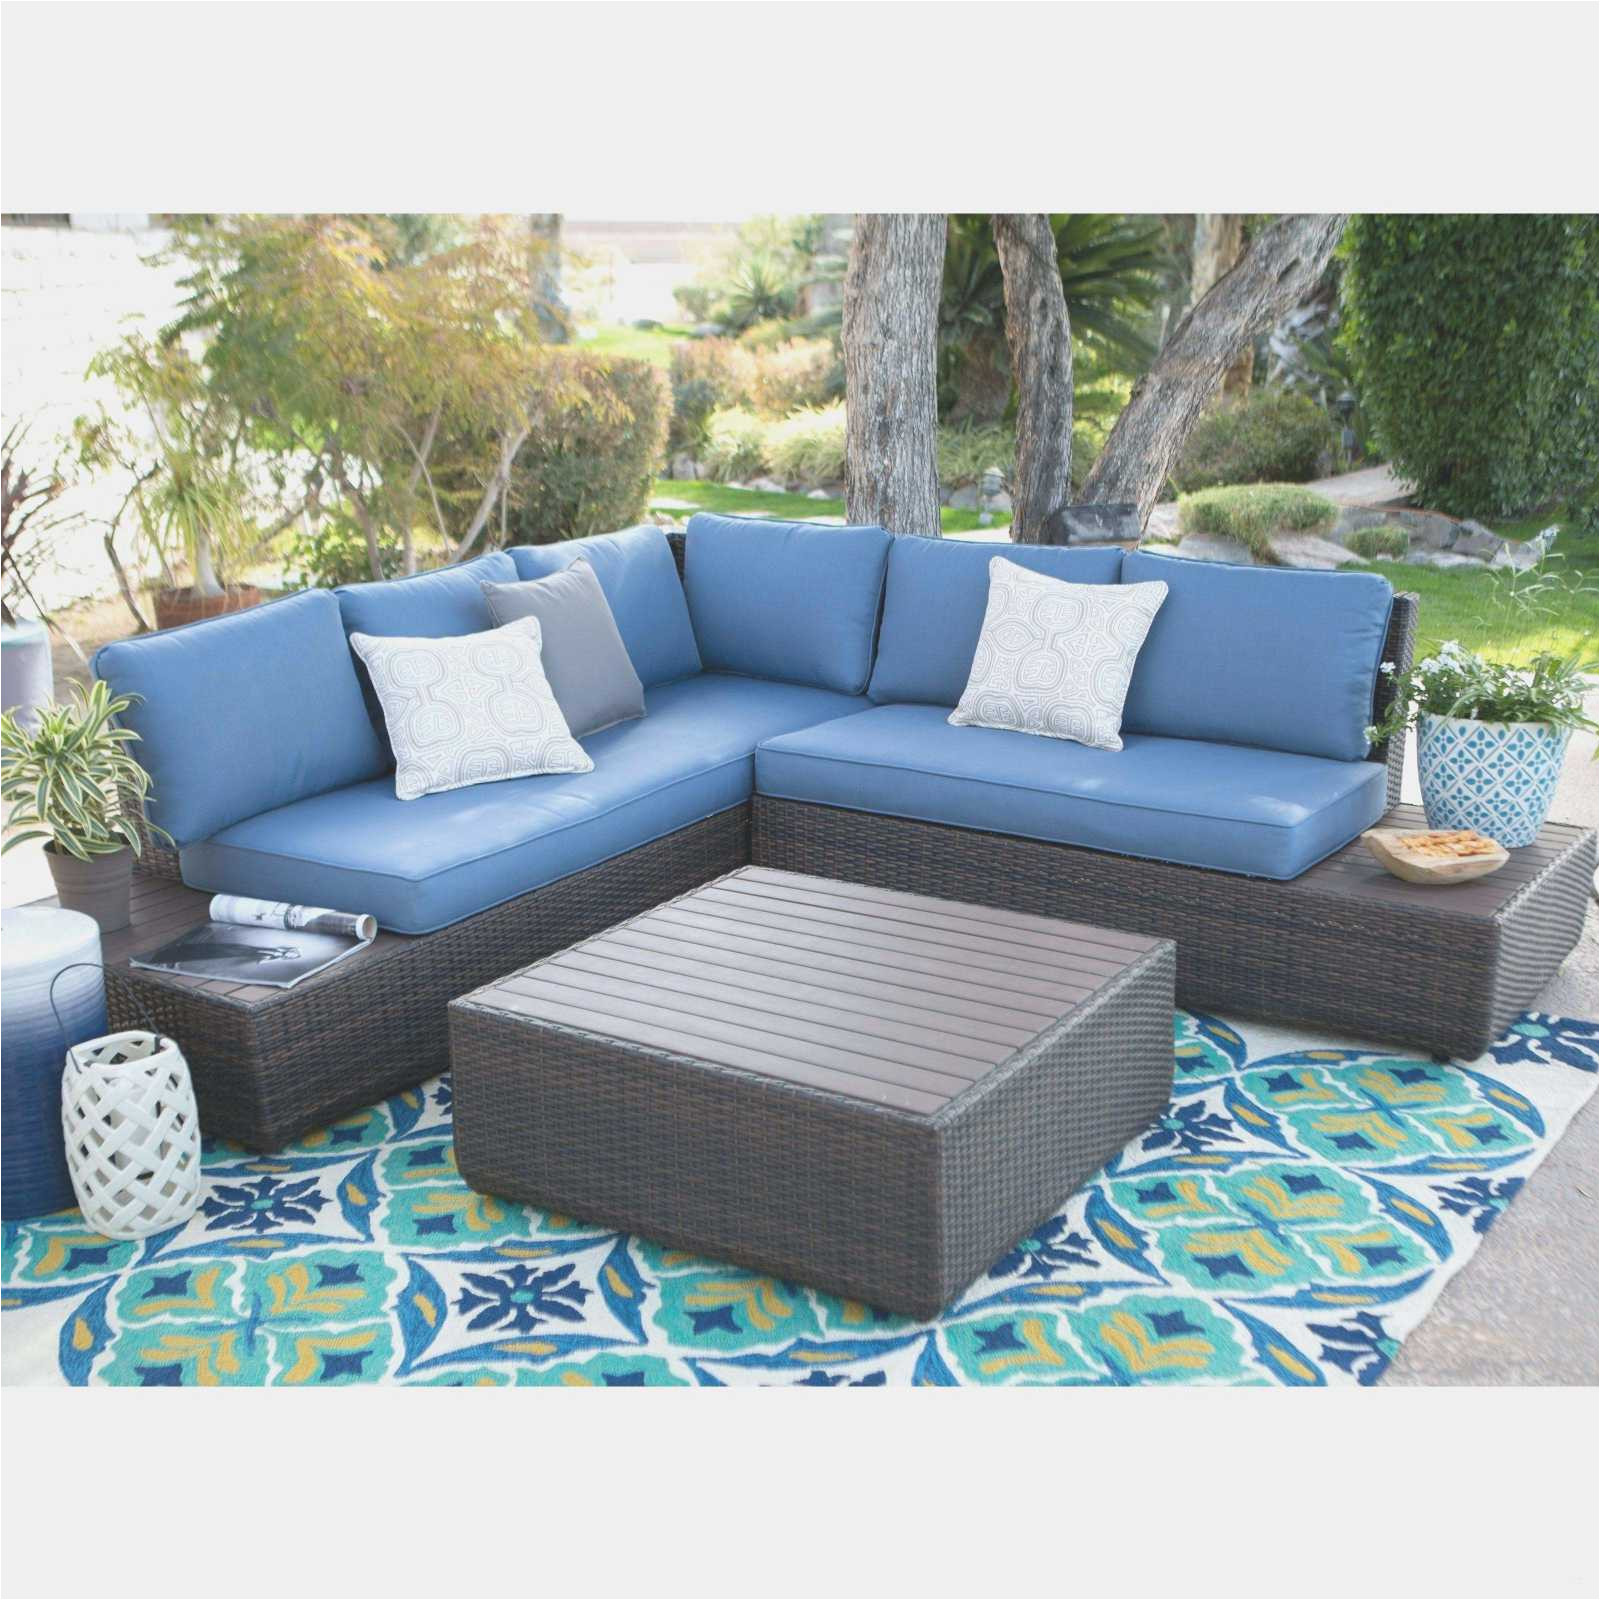 Unfinished Furniture Stores Rochester Ny All About Outdoor Furniture Stores Rochester Ny Furniture Information